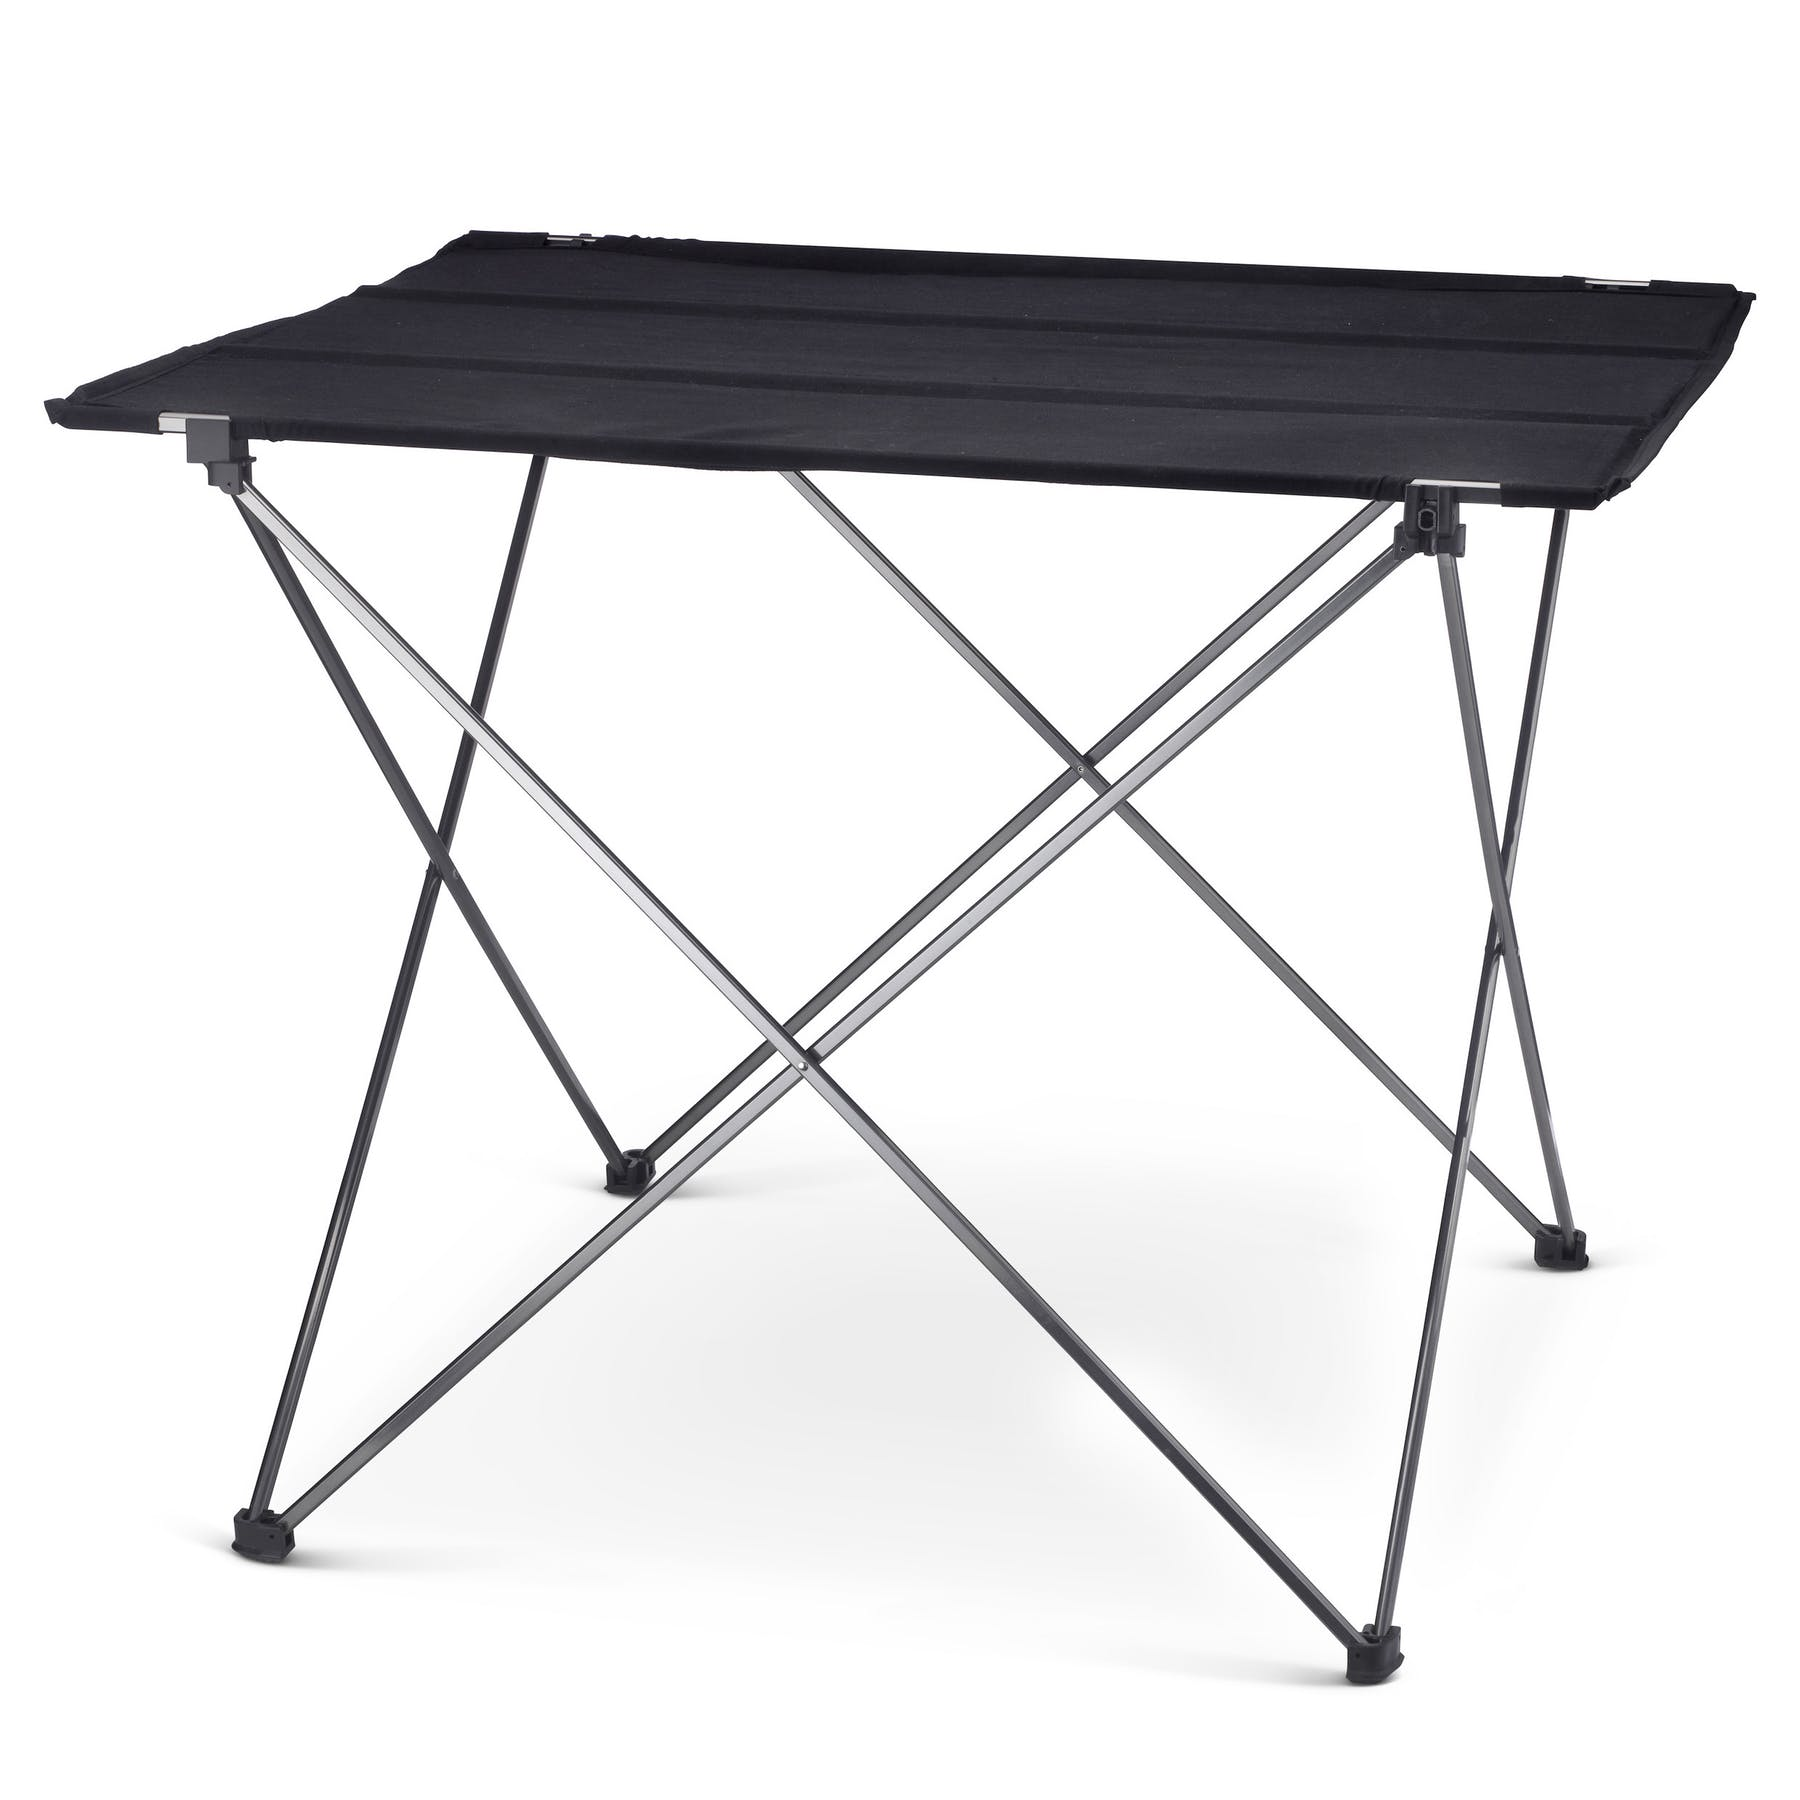 Campfire Picnic Table - For the Dad that like to sit by the fire, make little apple and cherry pies, but doesn't have anywhere to prep his food. This folding picnic table is great for fireside chats, and soccer game catering.